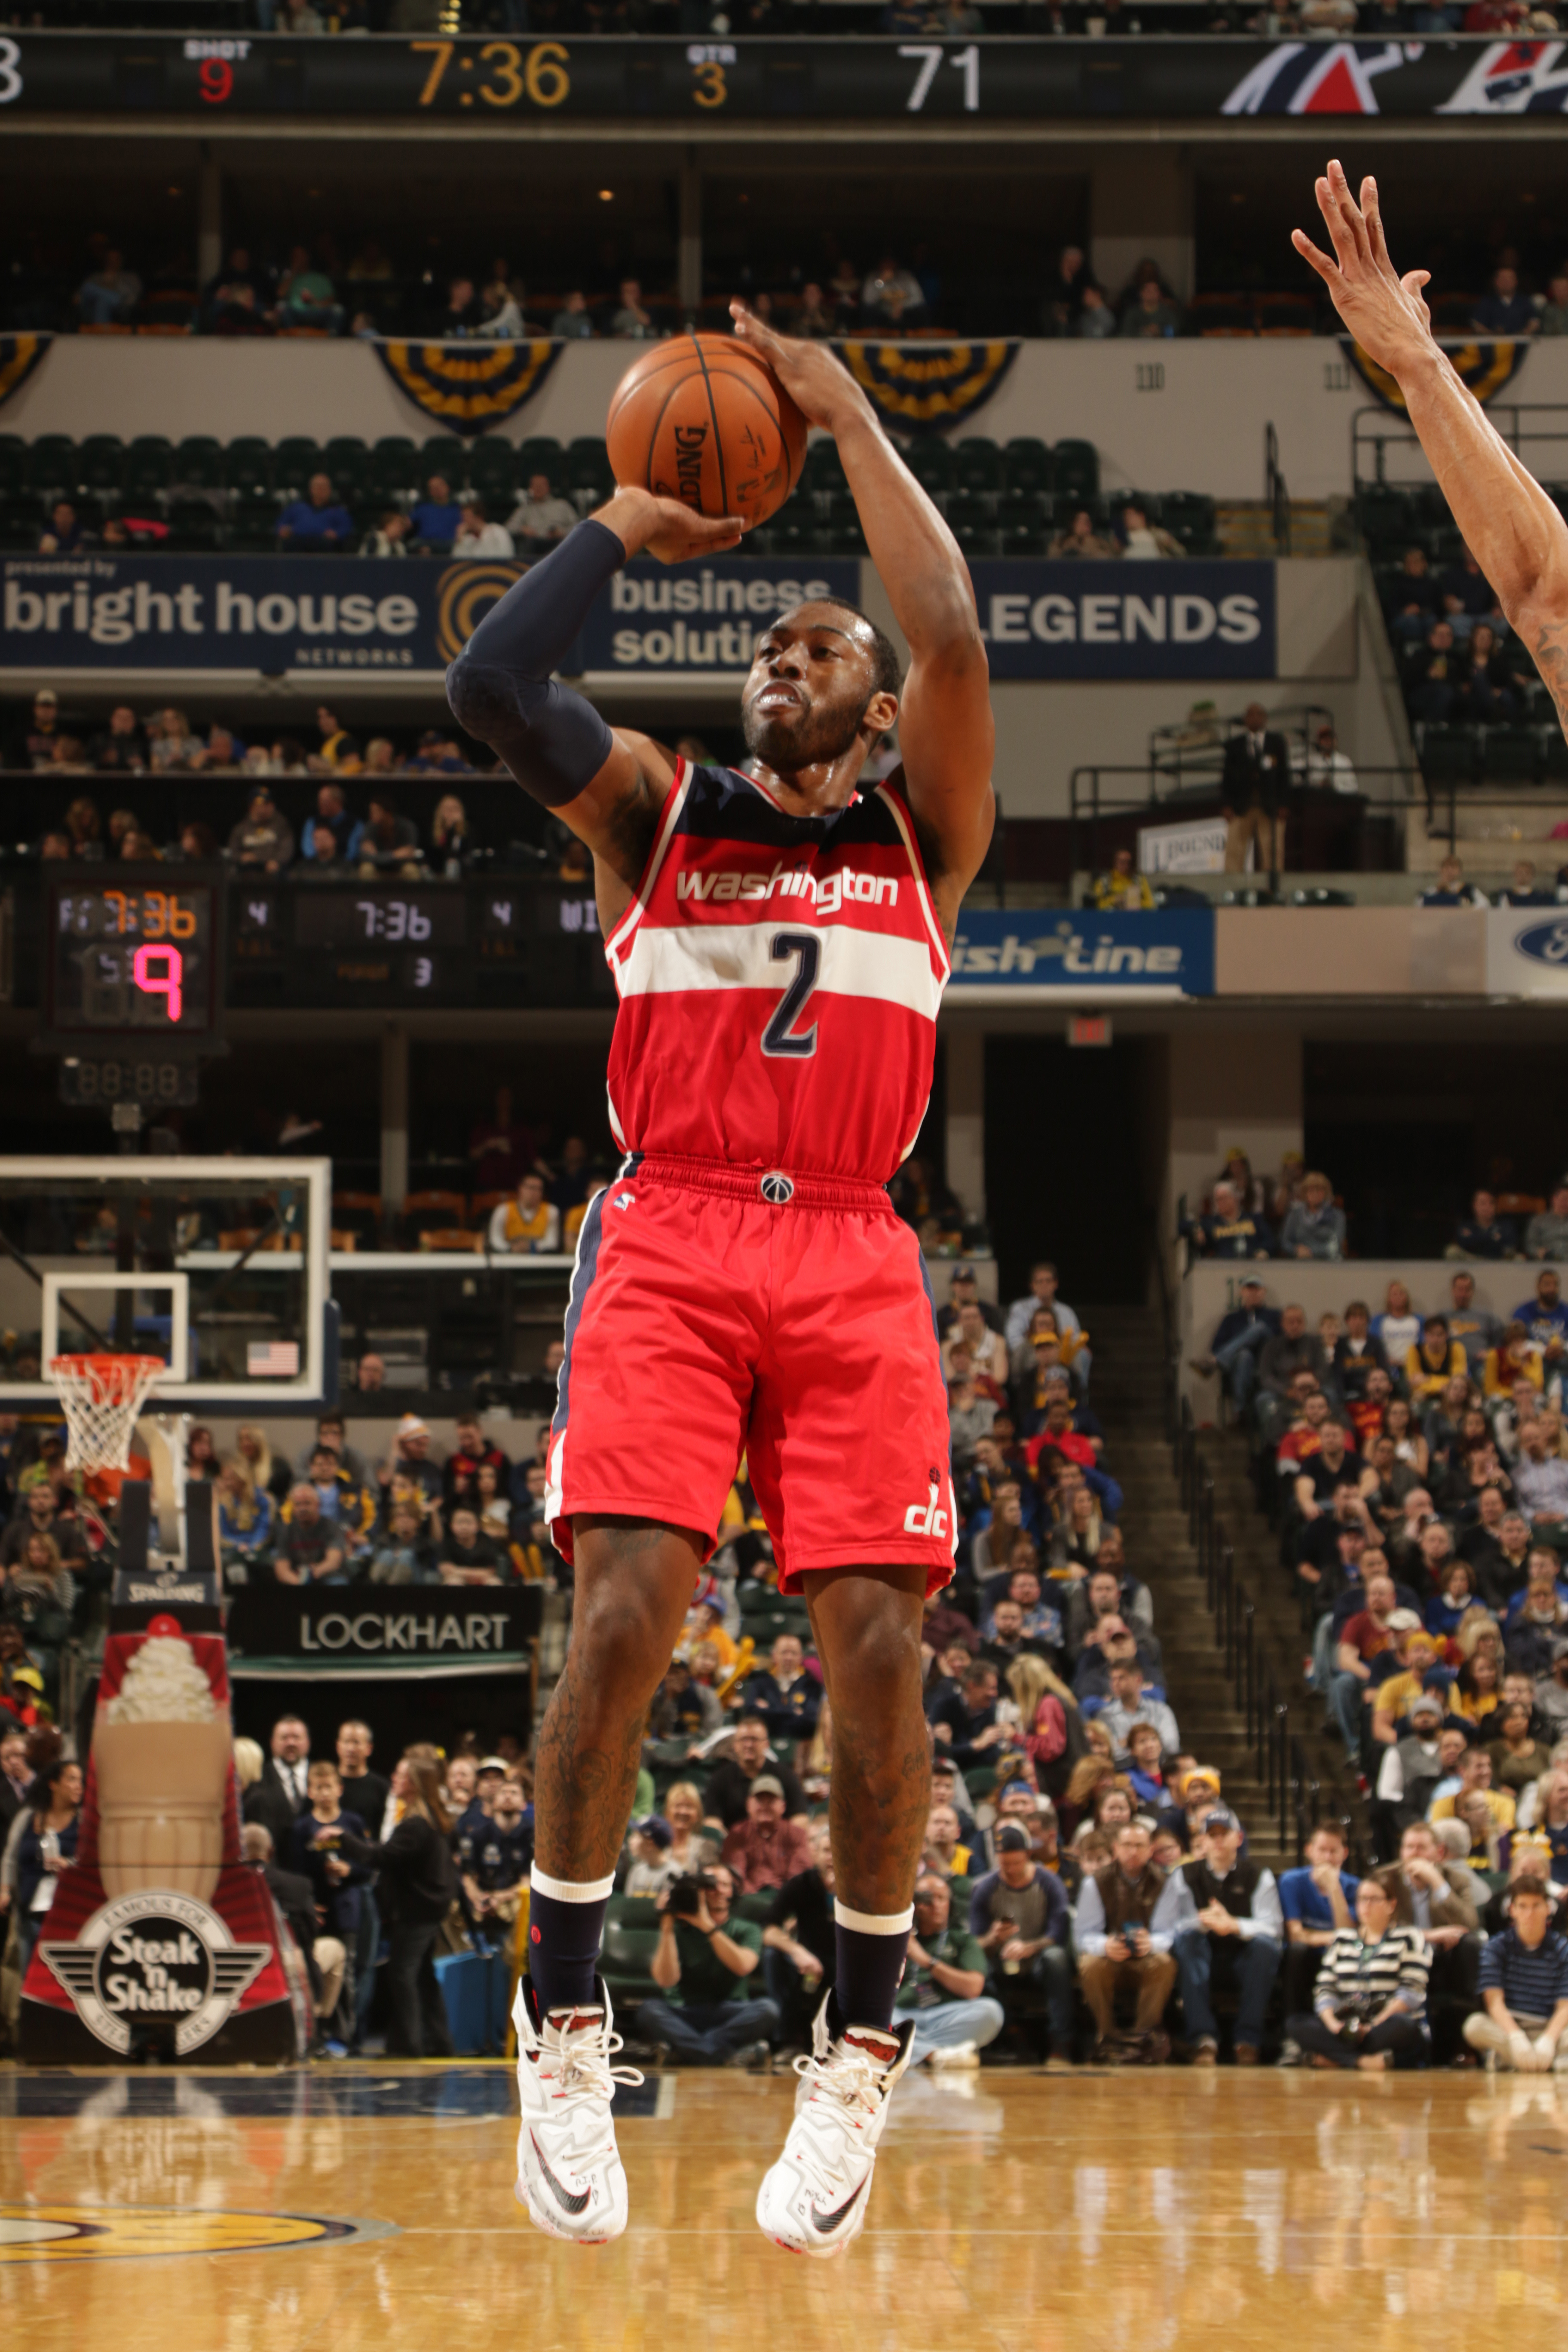 INDIANAPOLIS, IN - JANUARY 15: John Wall #2 of the Washington Wizards shoots the ball against the Indiana Pacers on January 15, 2016 at Bankers Life Fieldhouse in Indianapolis, Indiana. (Photo by Ron Hoskins/NBAE via Getty Images)